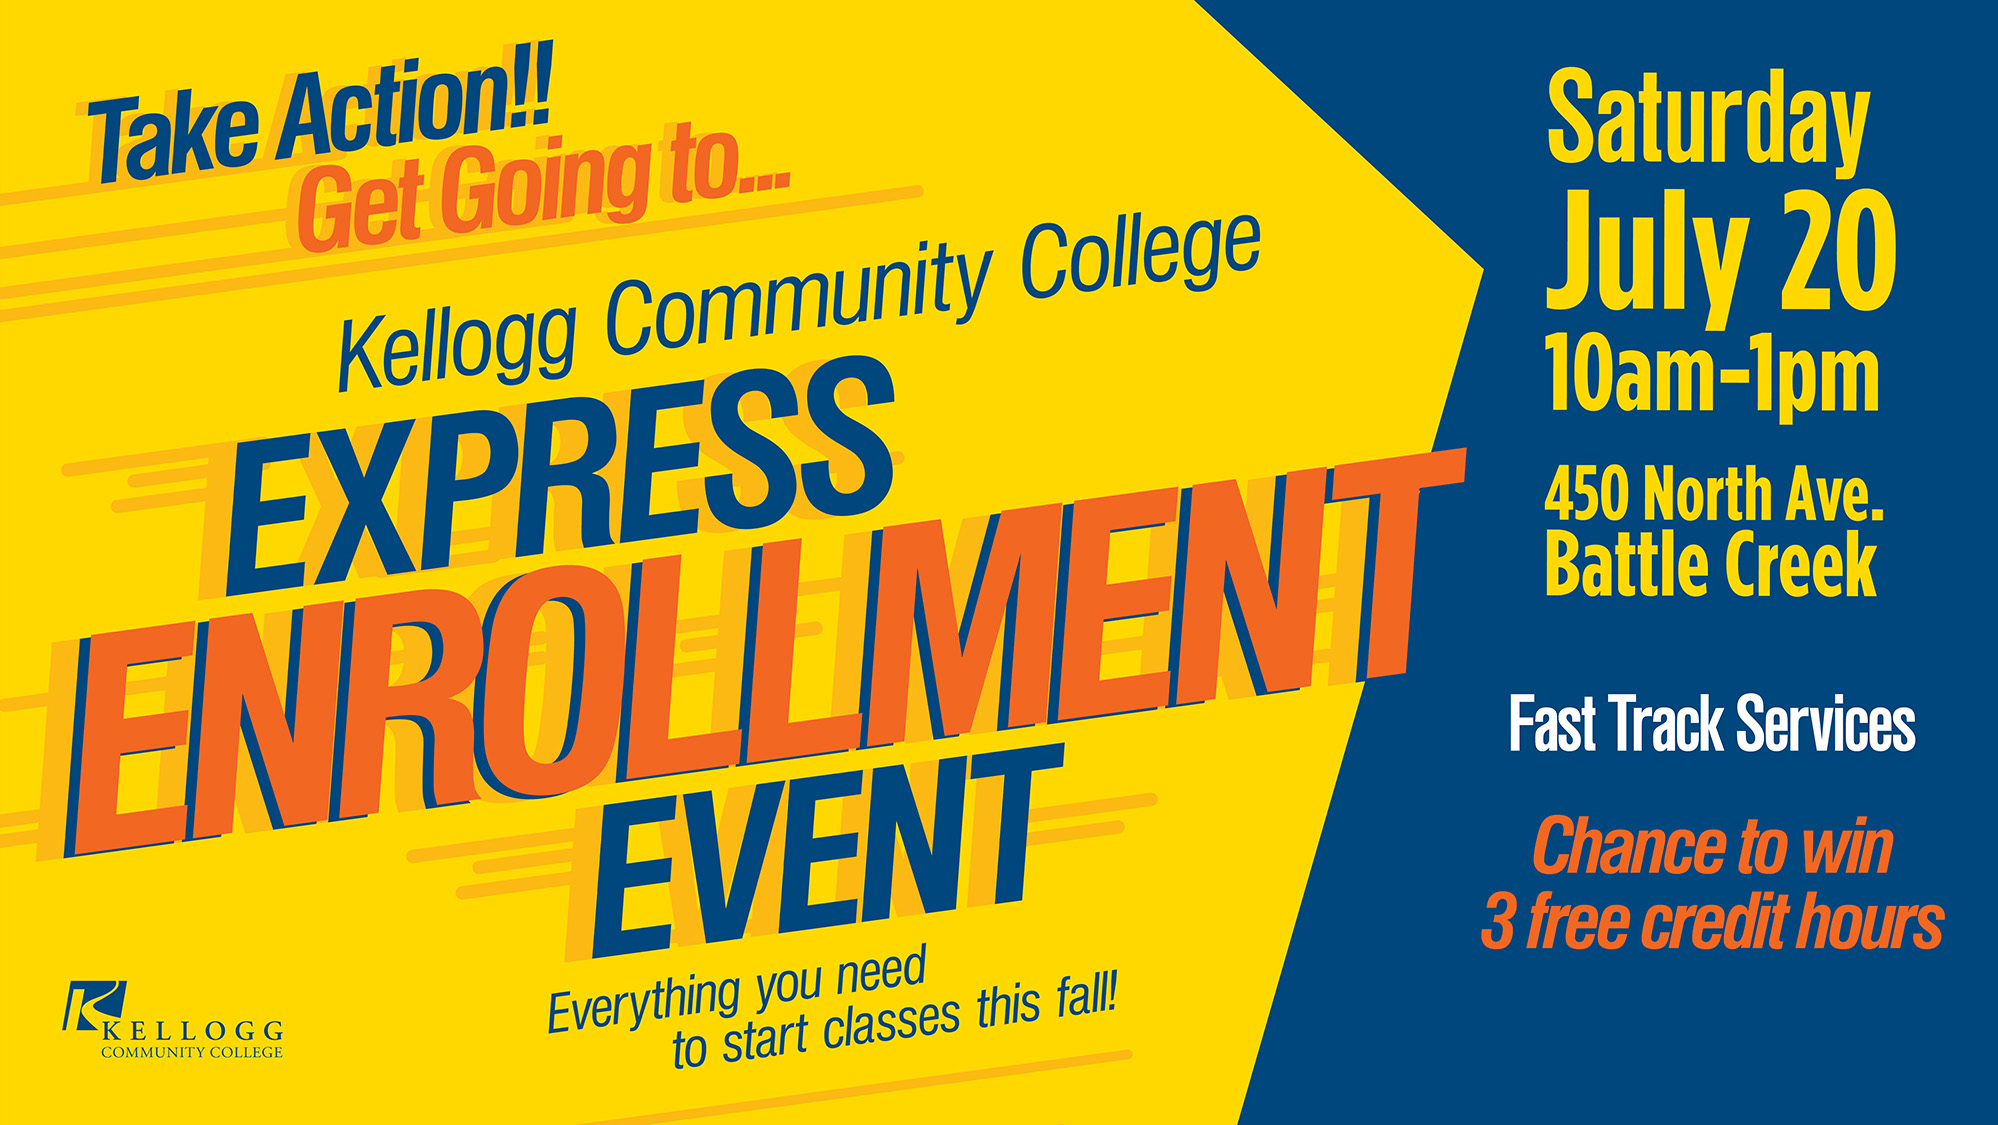 A text slide promoting KCC's Express Enrollment Event.